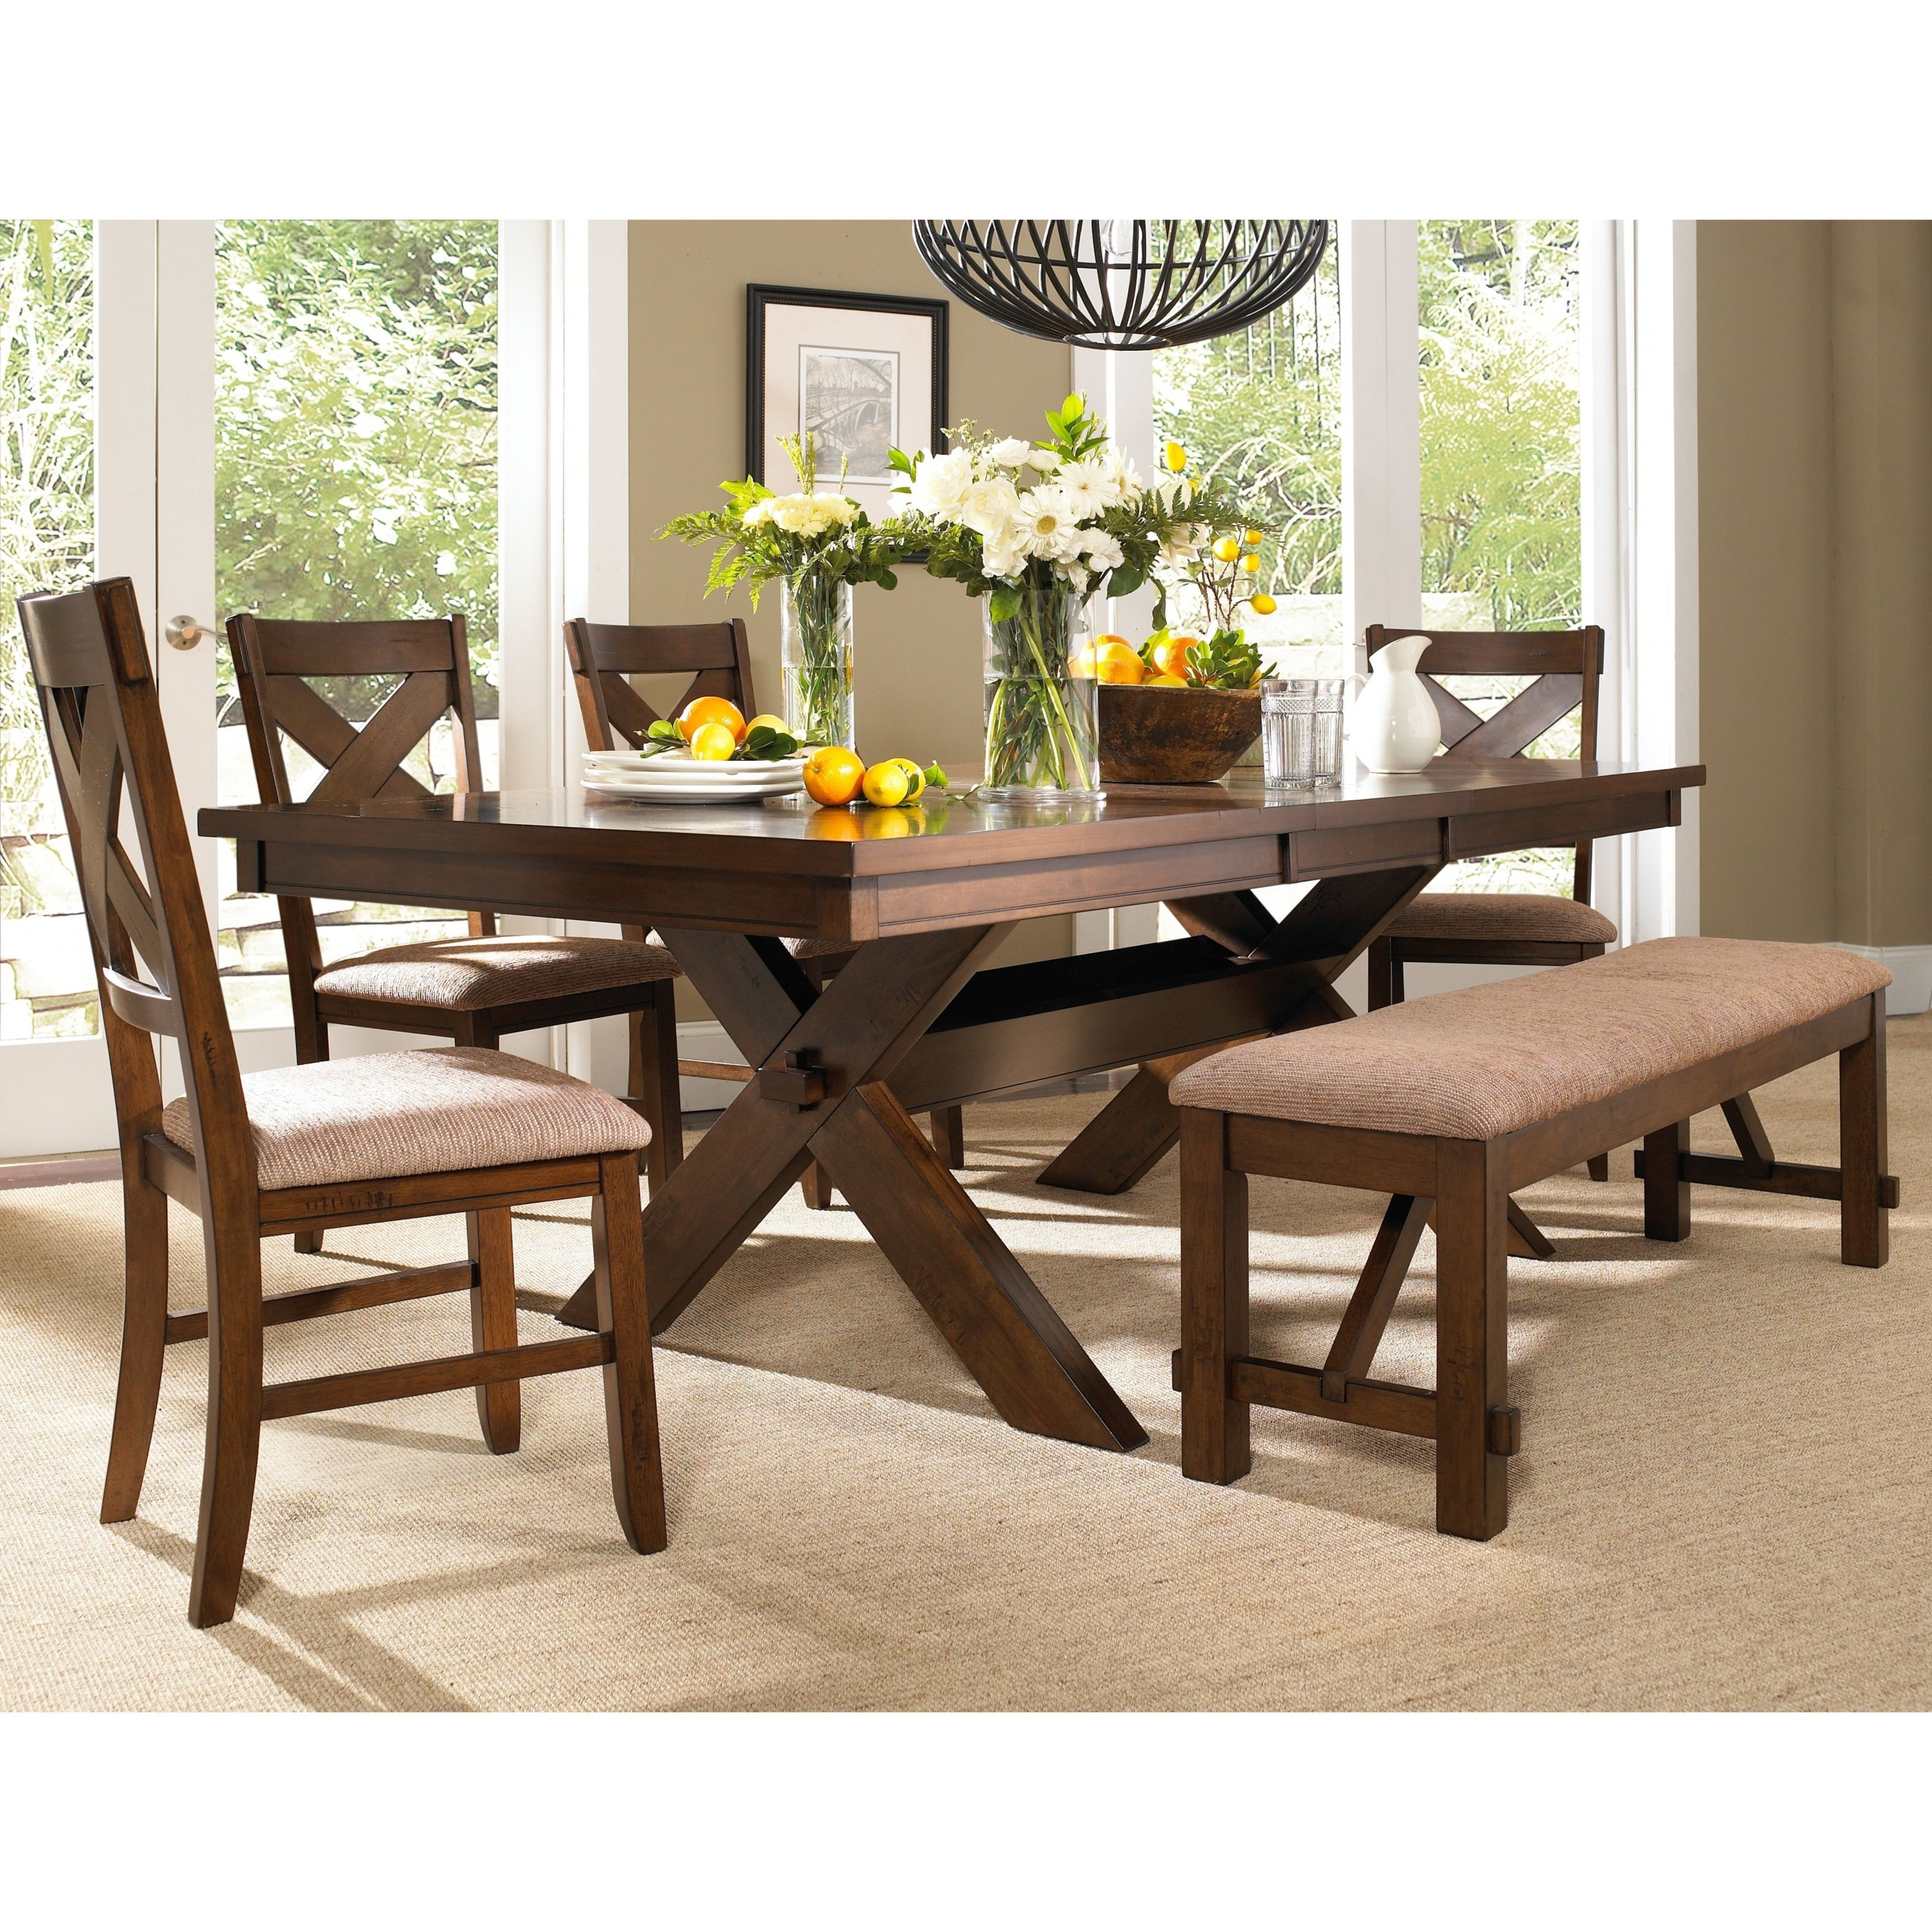 Charming Roundhill Furniture 6 Piece Karven Solid Wood Dining Set With Table, 4  Chairs And